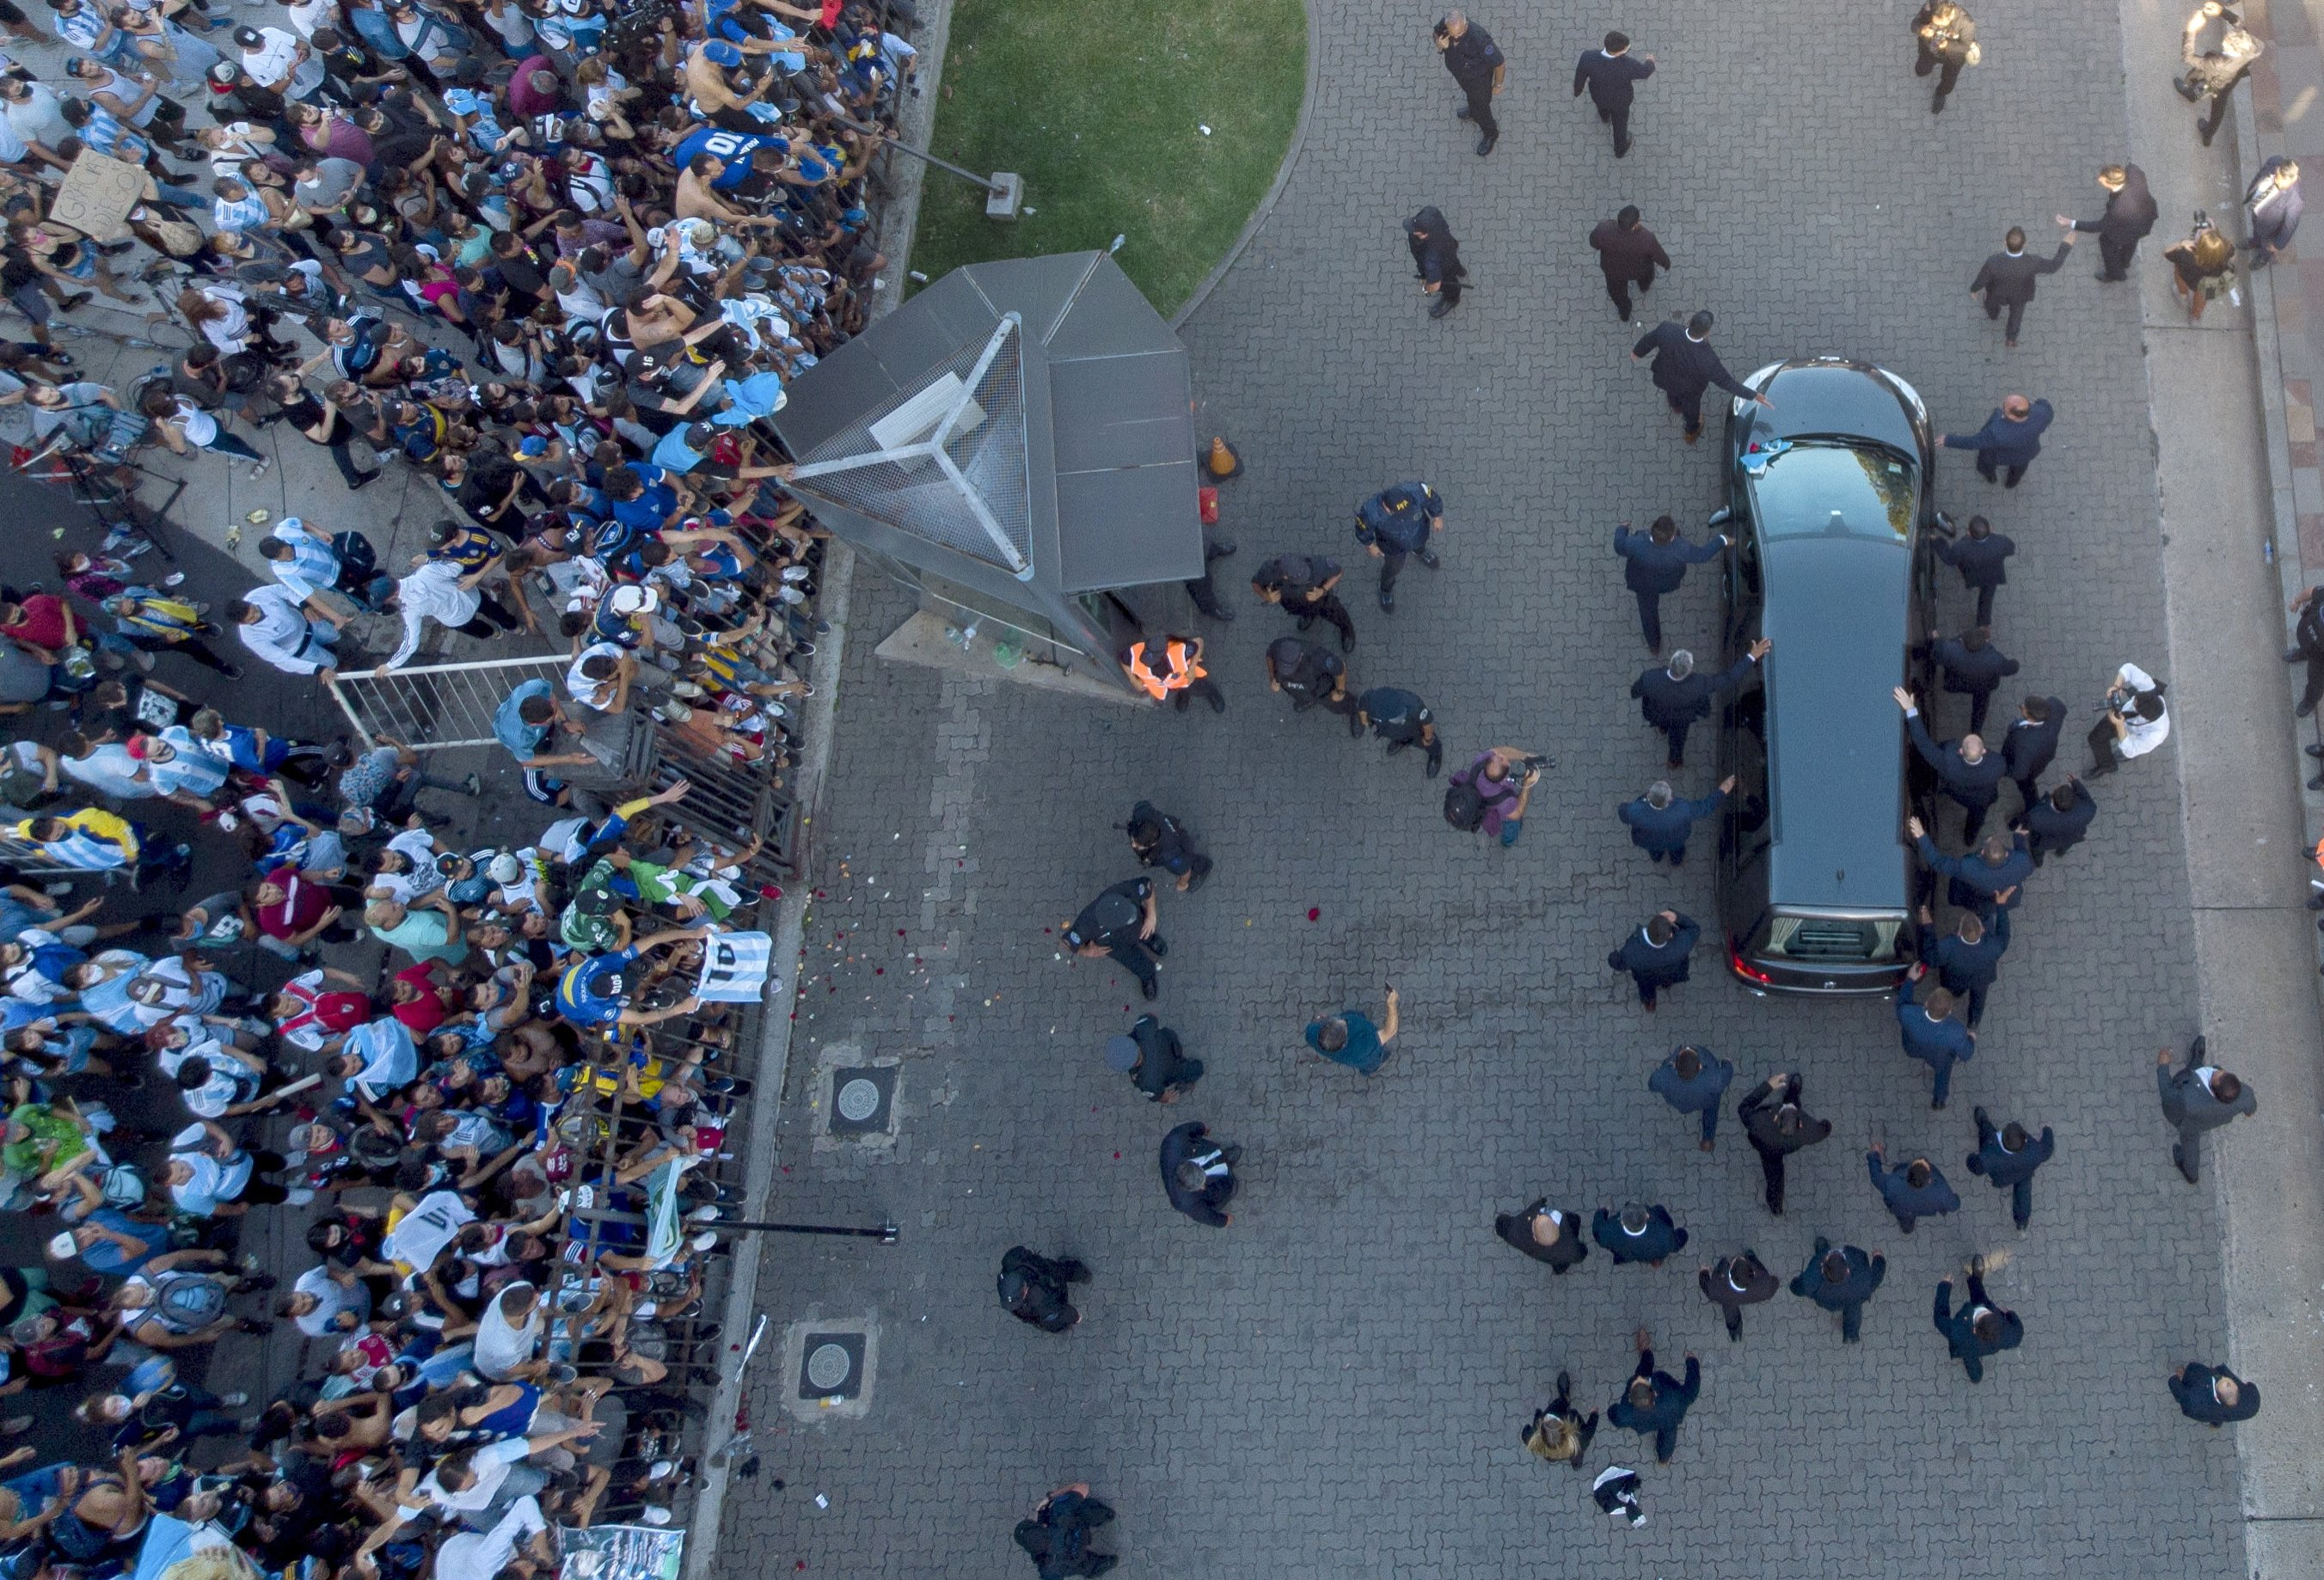 The hearse carrying the casket of Diego Maradona leaves the government house in Buenos Aires, Argentina, Nov. 26, 2020.  (AP Photo)